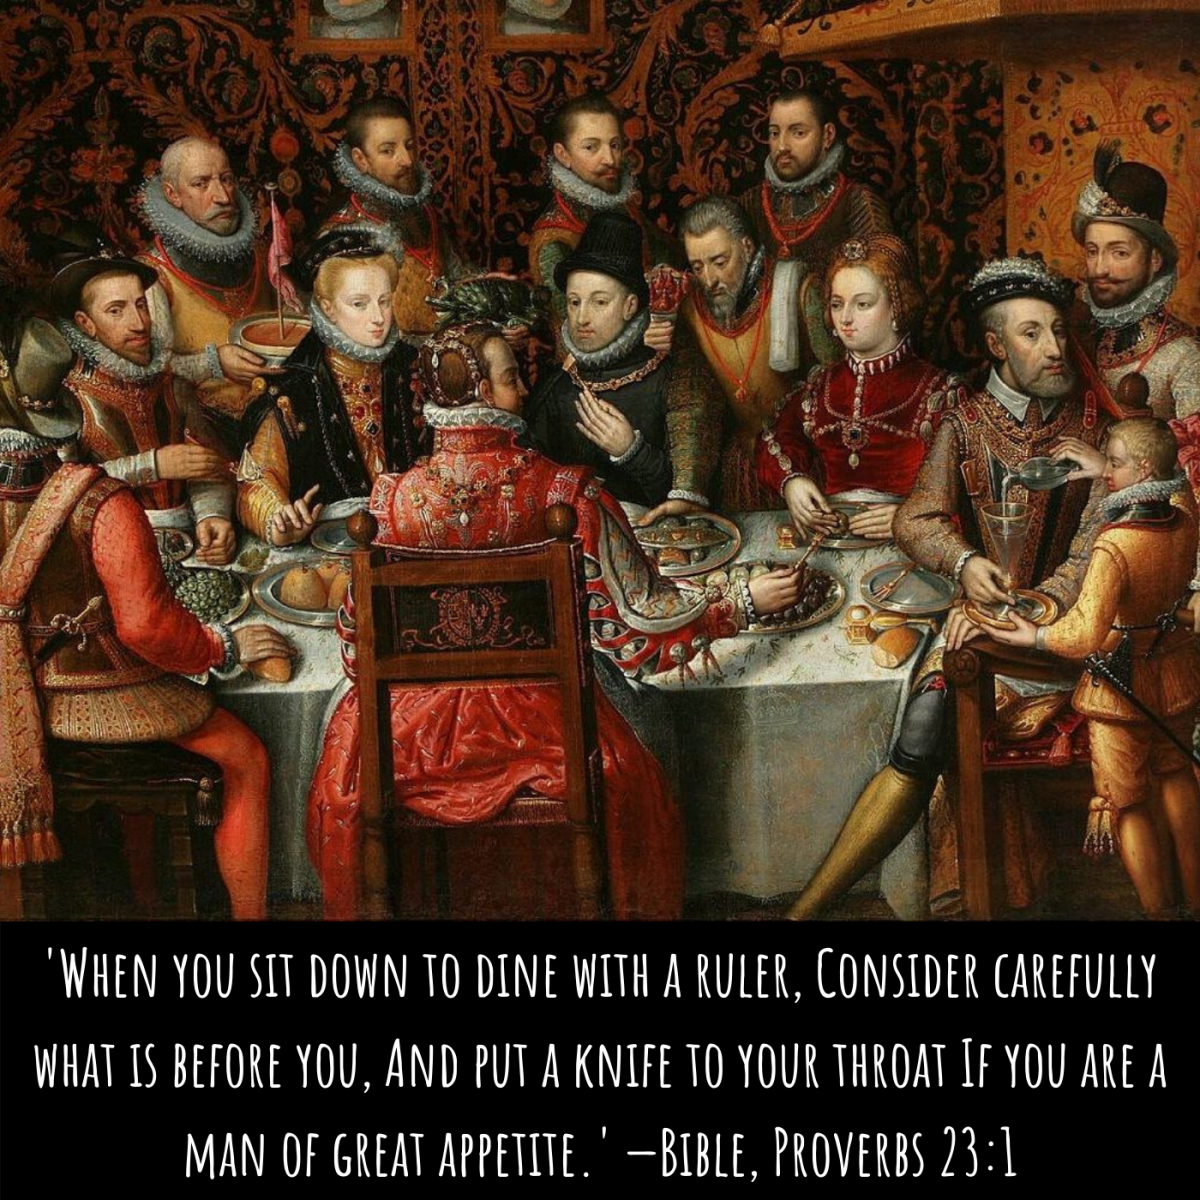 'When you sit down to dine with a ruler, Consider carefully what is before you, And put a knife to your throat If you are a man of great appetite.' —Bible, Proverbs 23:1